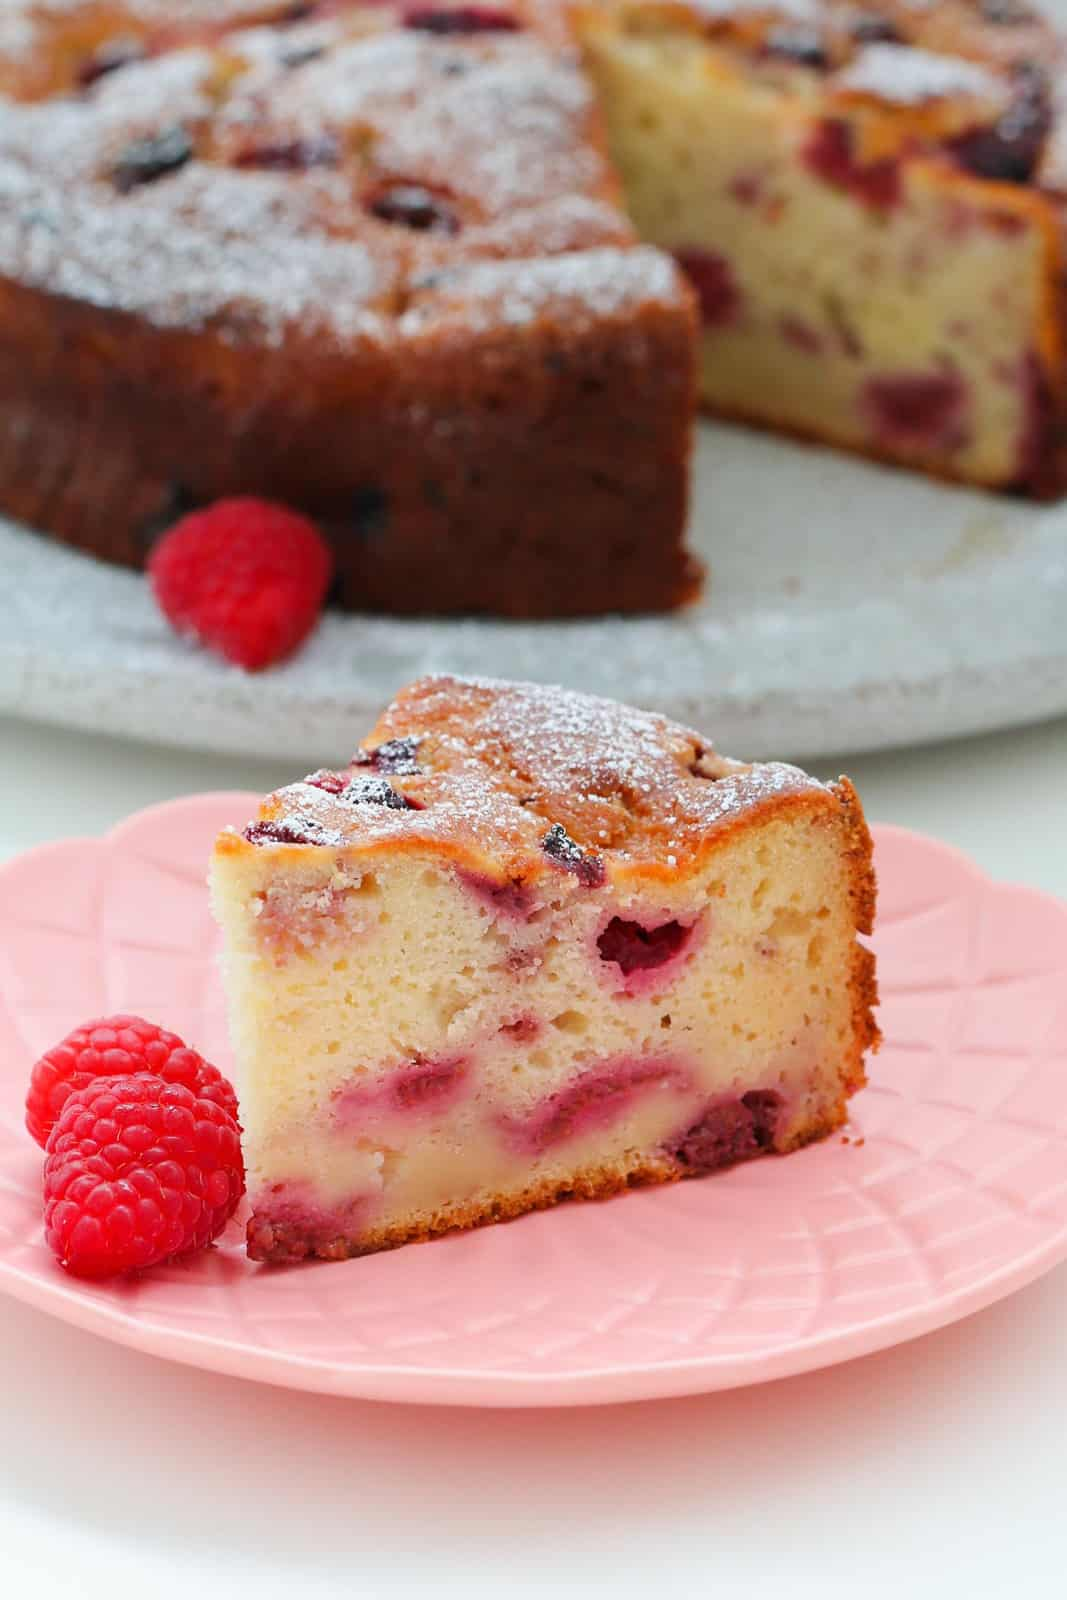 Close view of a serve of raspberry ricotta cake on pink plate with fresh raspberries